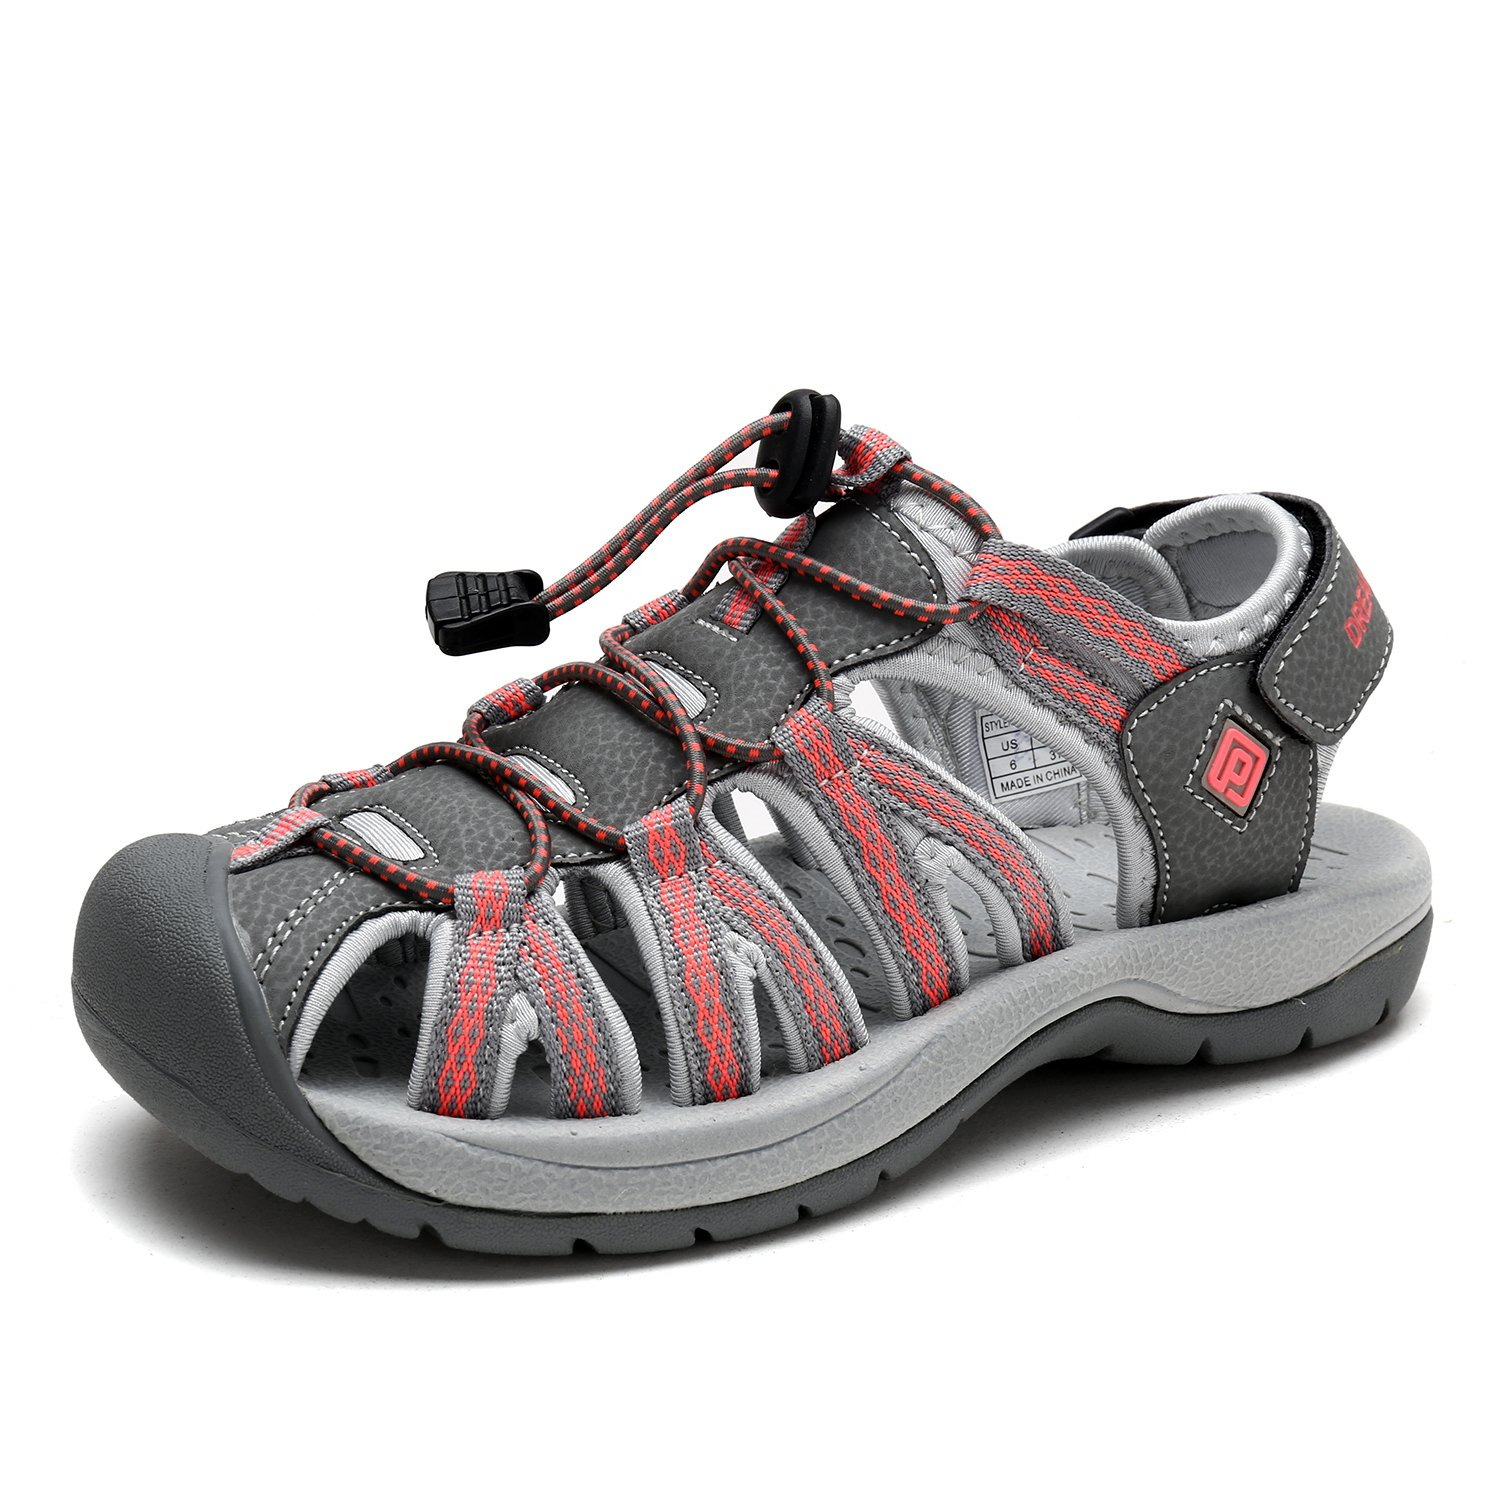 DREAM PAIRS Women's 160912-W Adventurous Summer Outdoor Sandals B077GB71PL 5.5 B(M) US|New Grey Coral